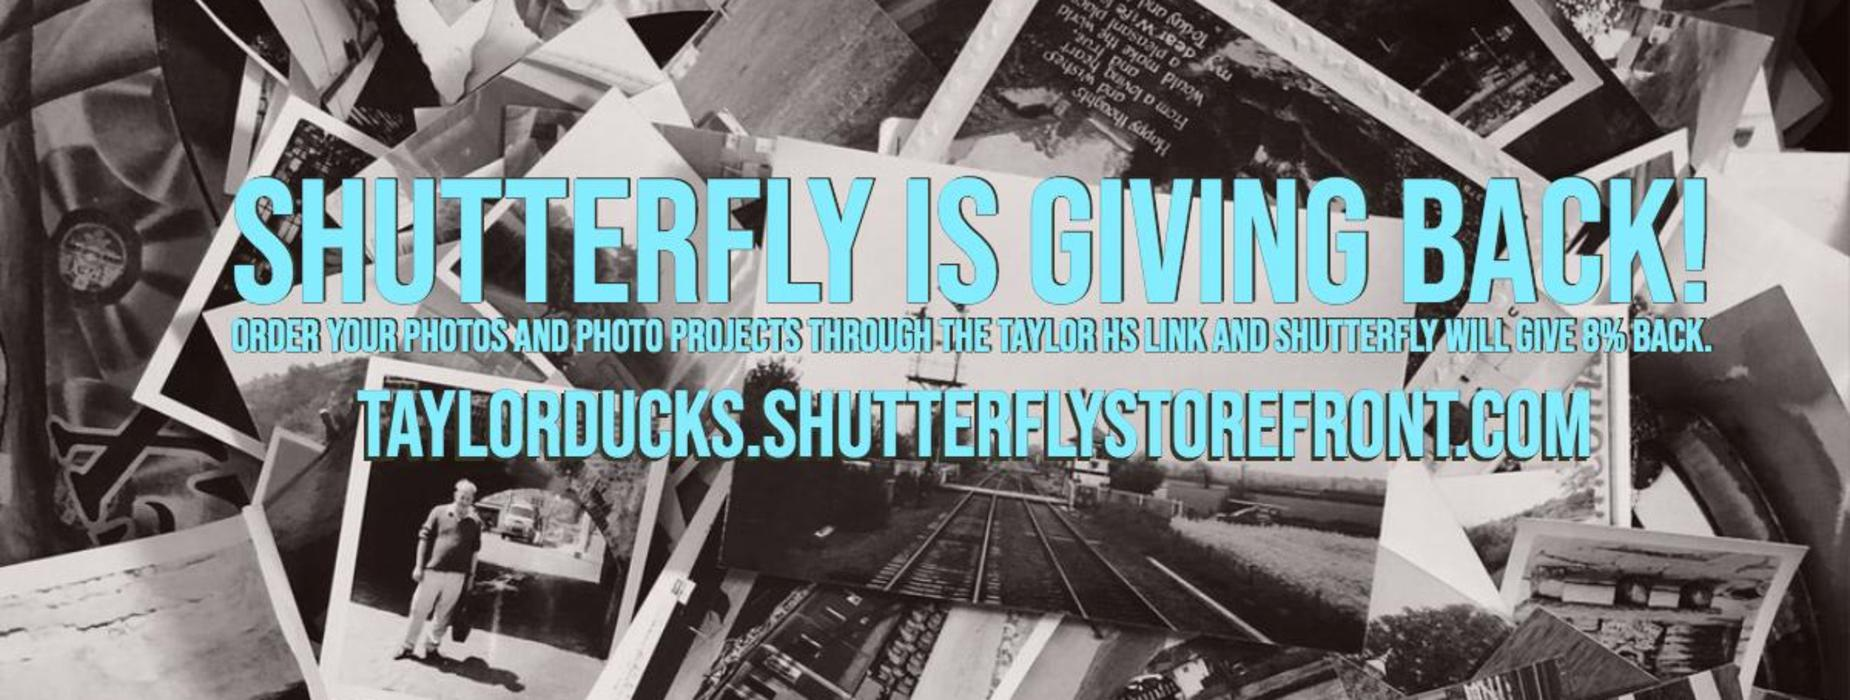 shutterfly gives back